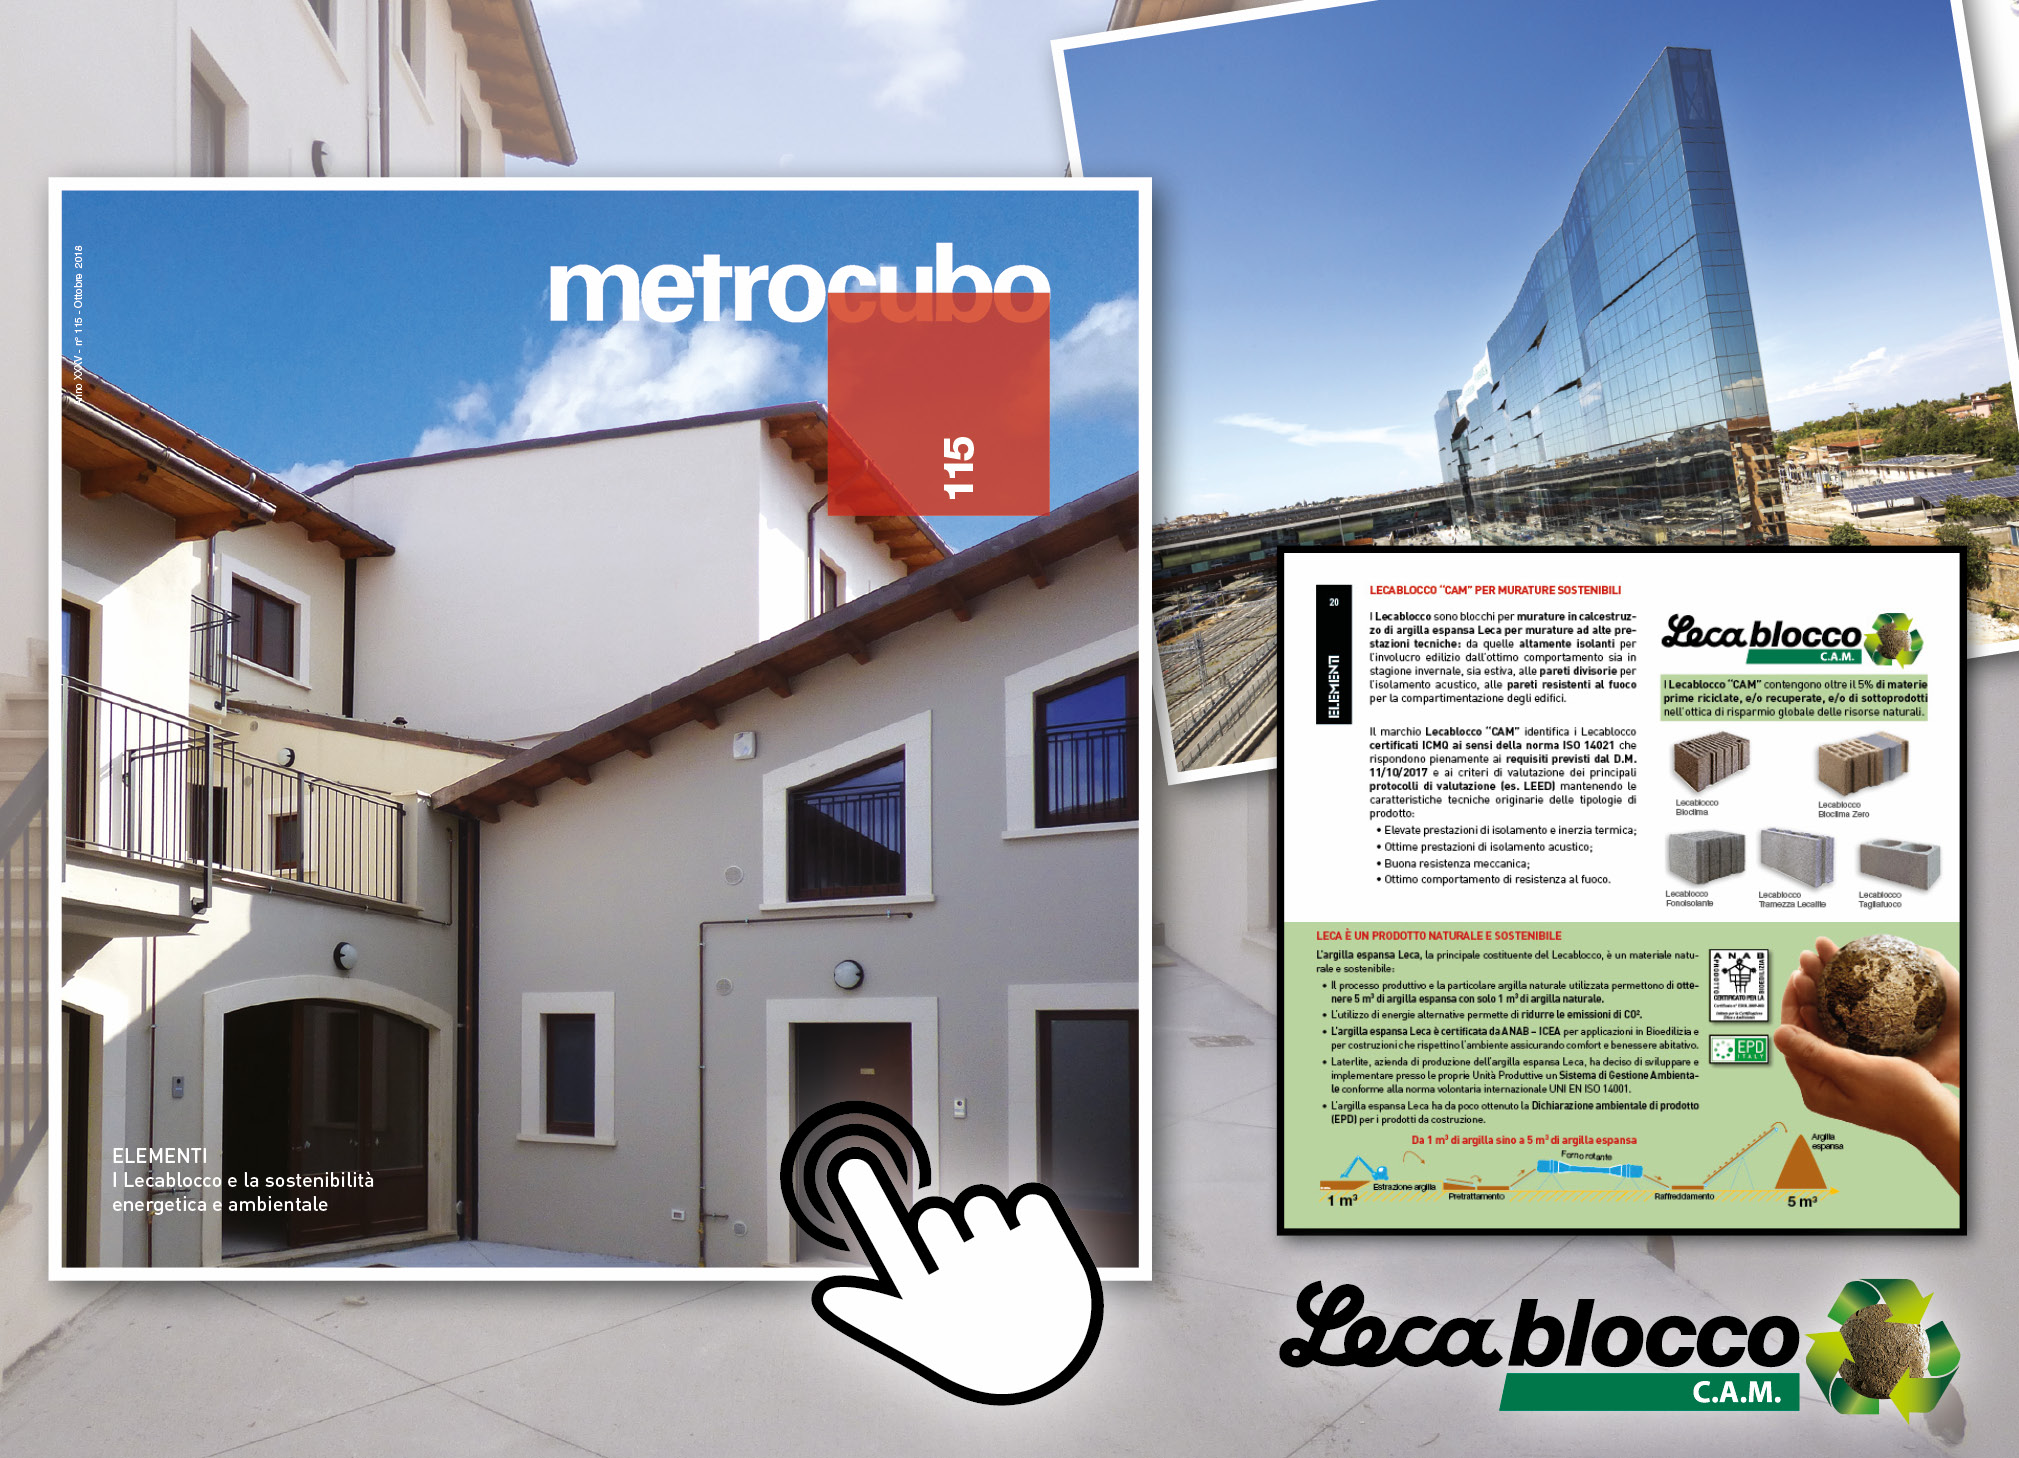 NewsLetter-Metrocubo115-2018